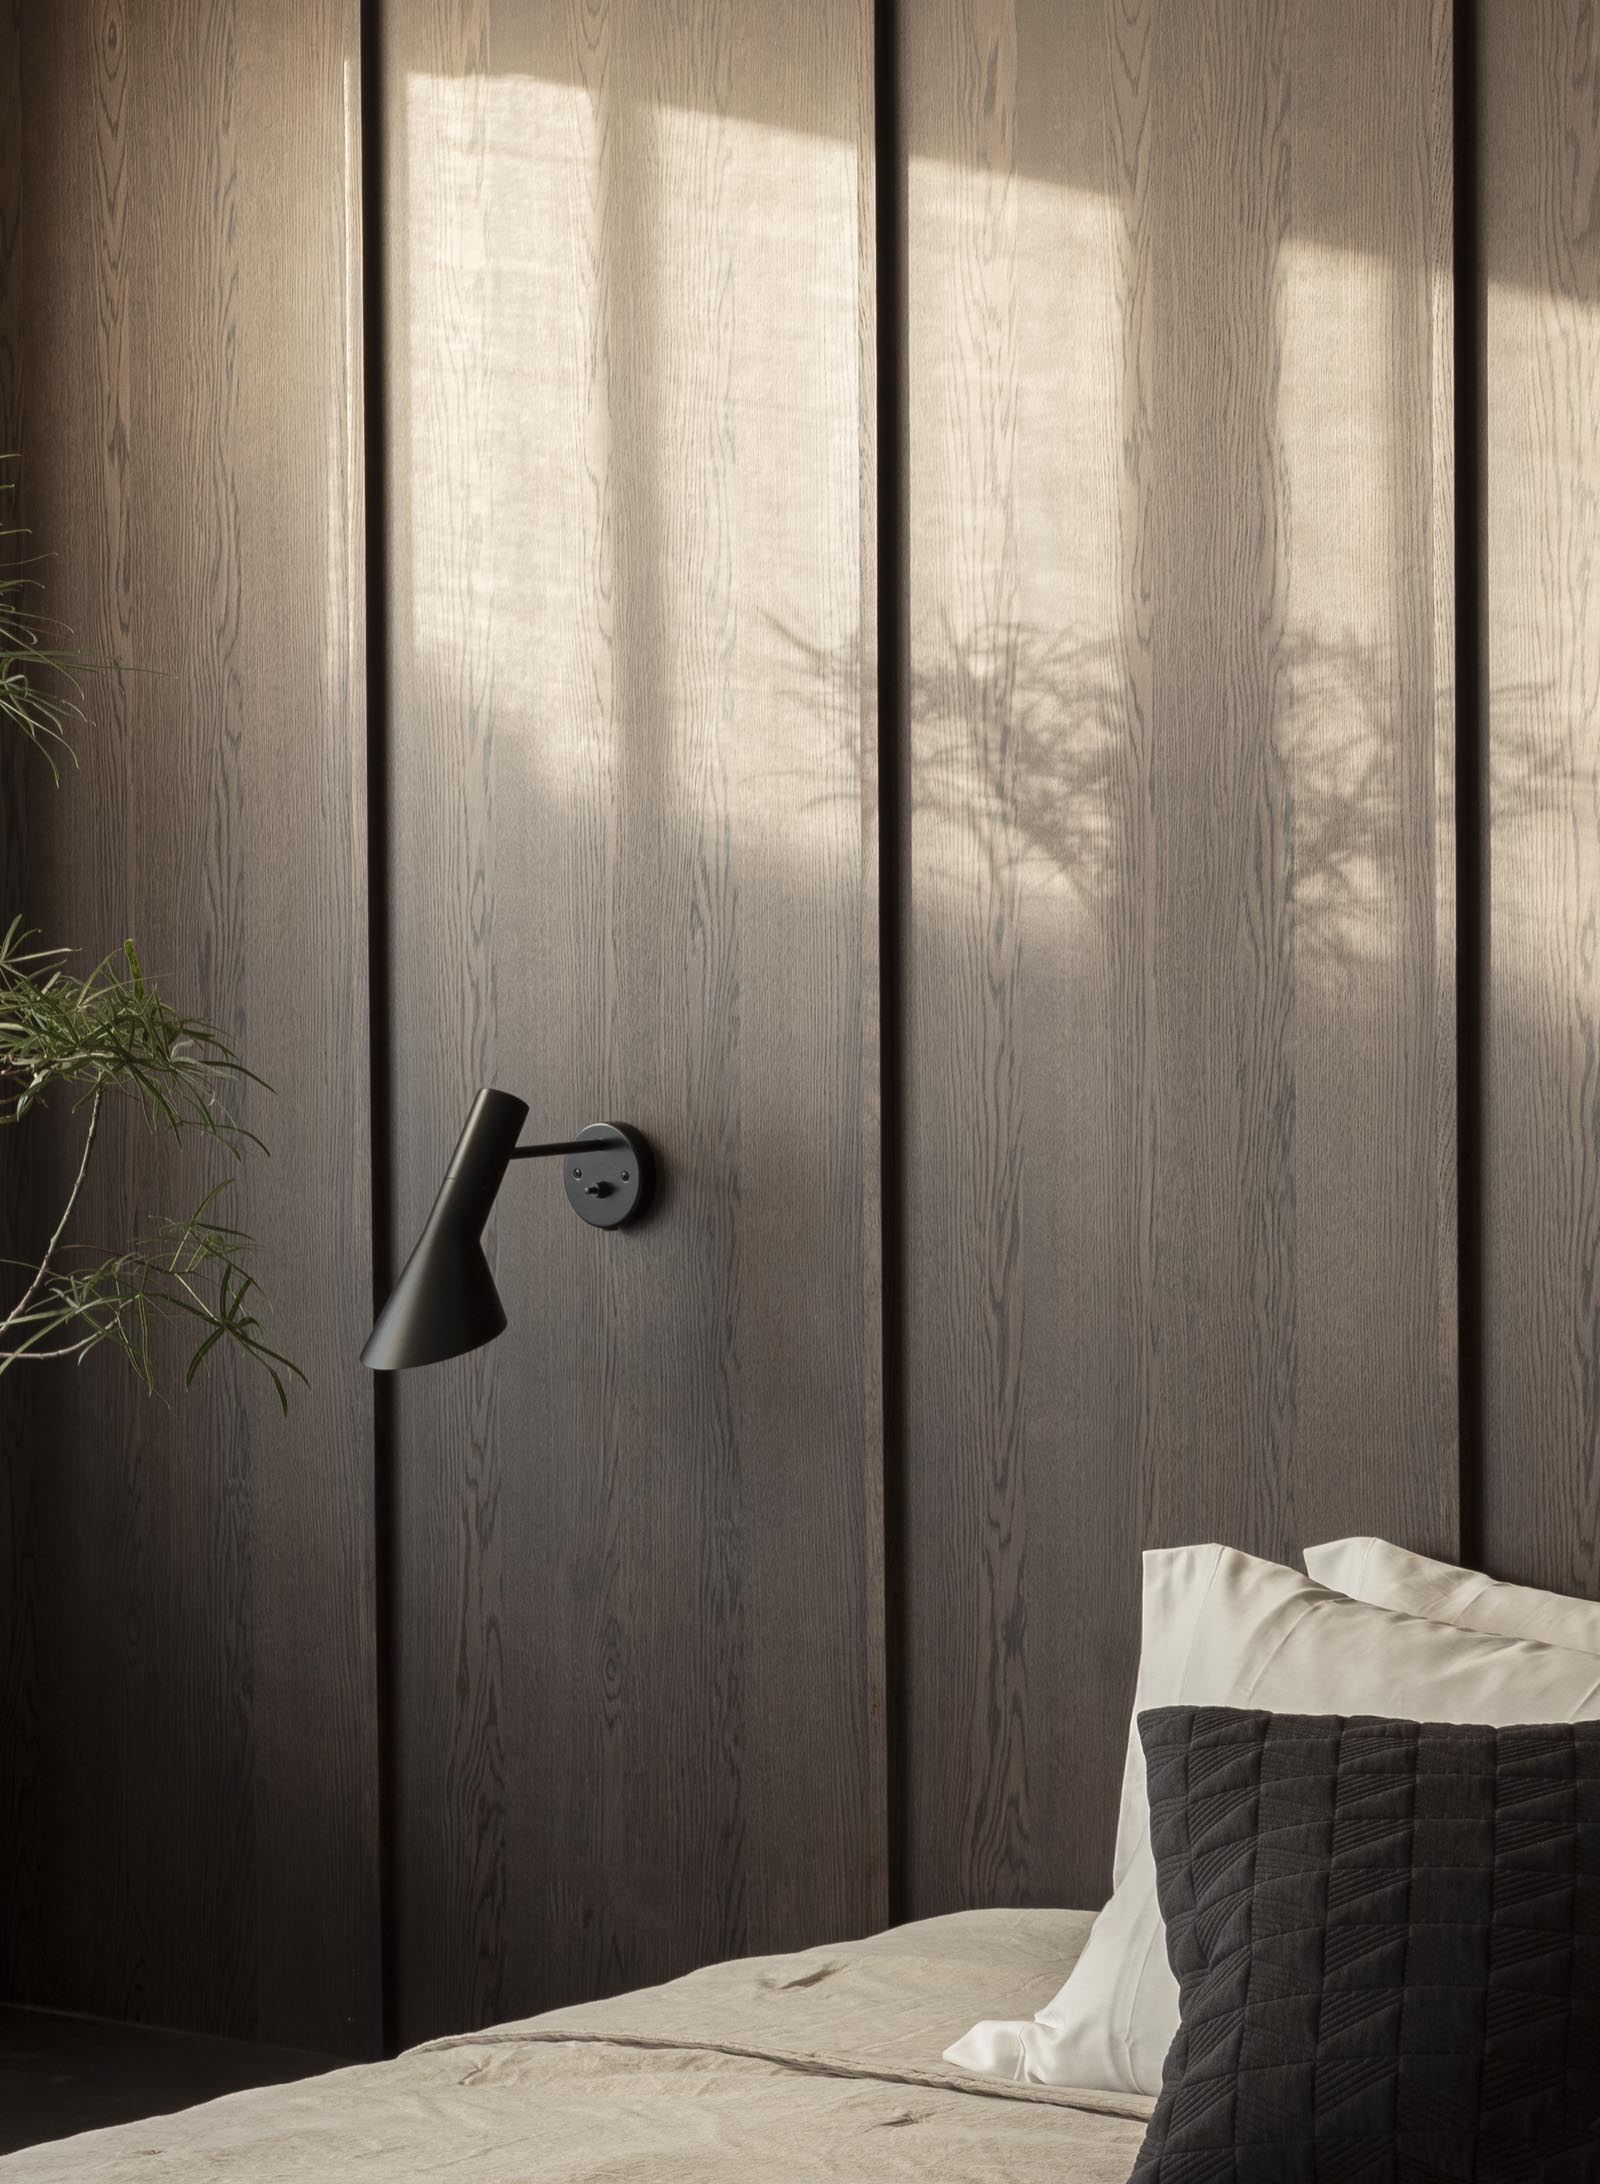 Minimalist Japandi bedroom with dark wooden wall panelling and neutral earthy tones | These Four Walls blog